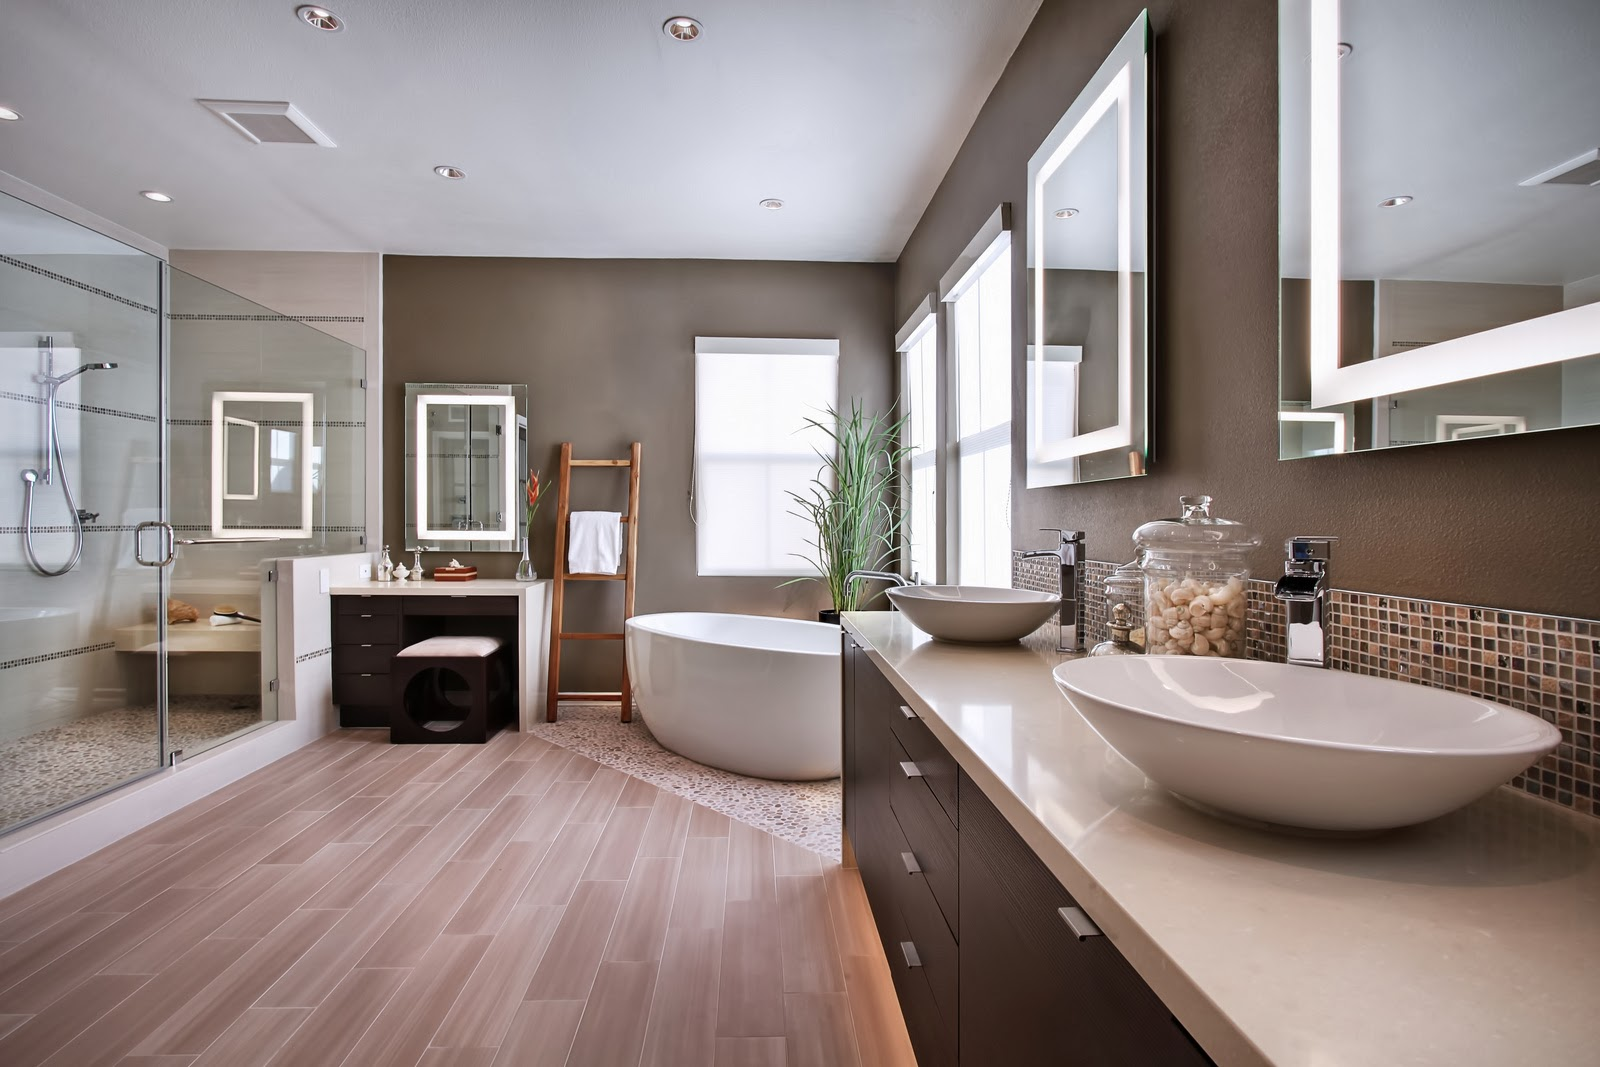 About Bathroom Designs For 2014 And Much More Bathroom Designs